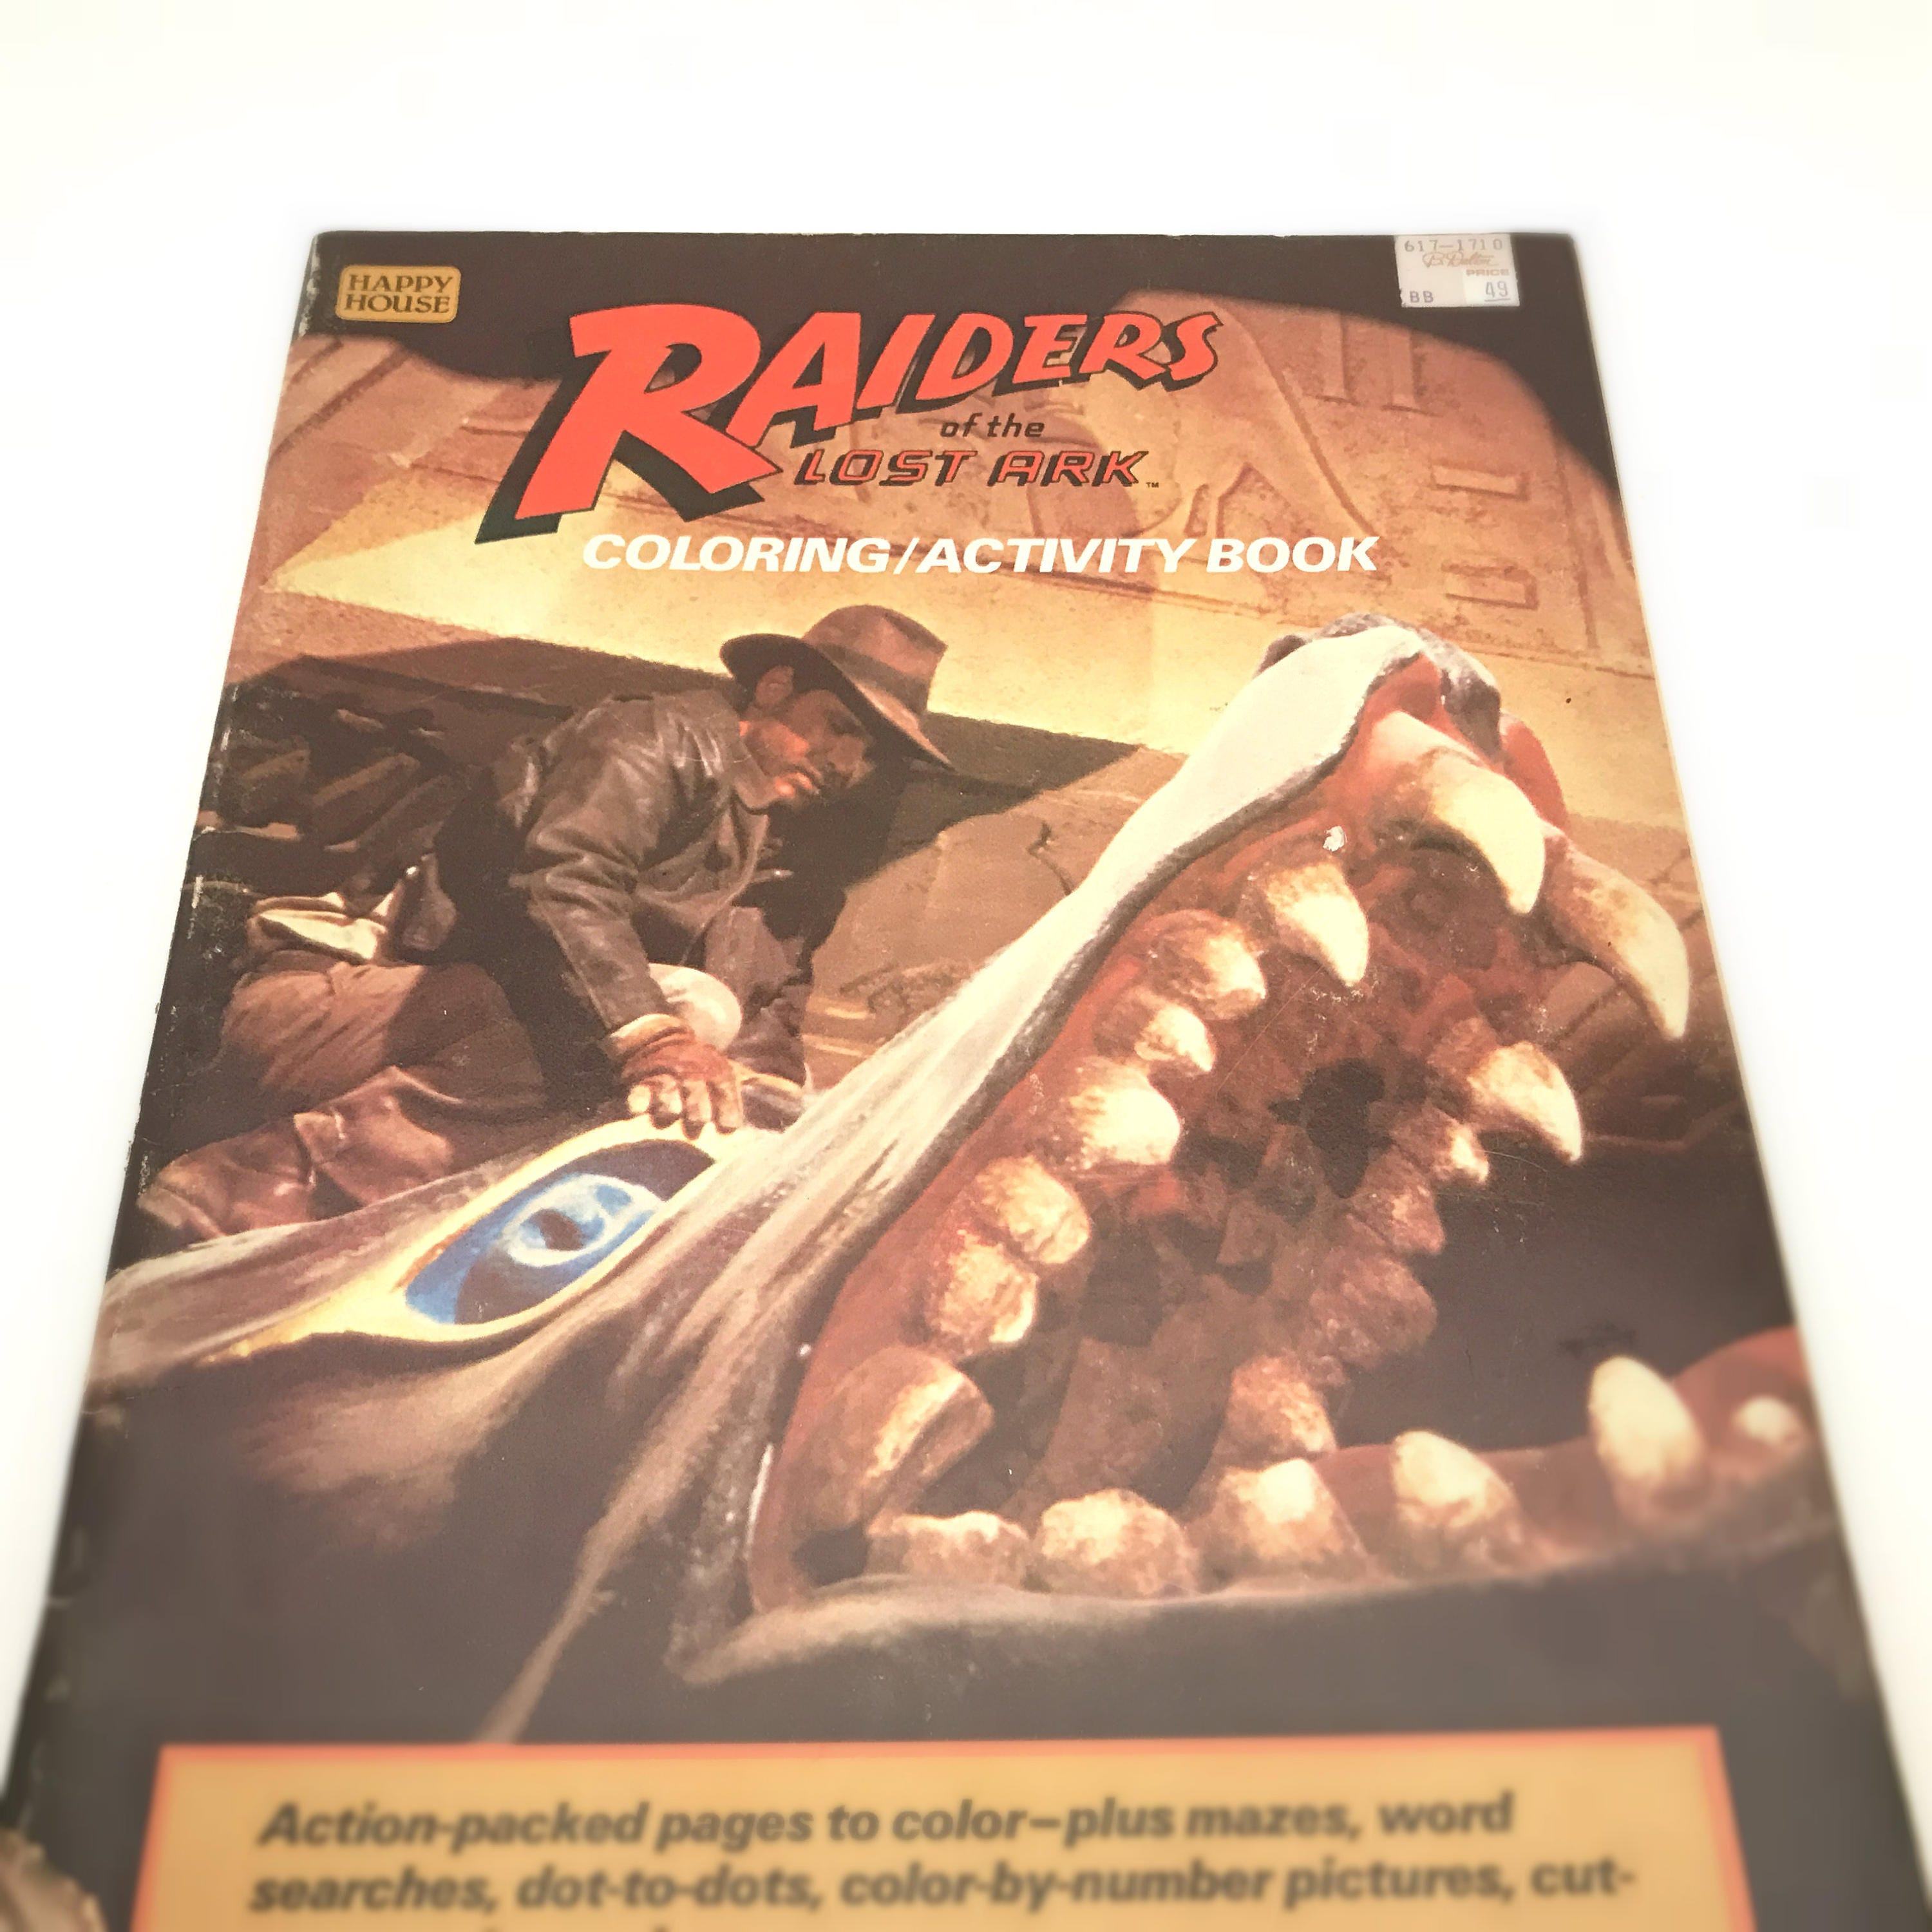 Whitman hot wheels coloring book - Vintage Coloring Book Indiana Jones Raiders Of The Lost Ark 1980s Kids Coloring